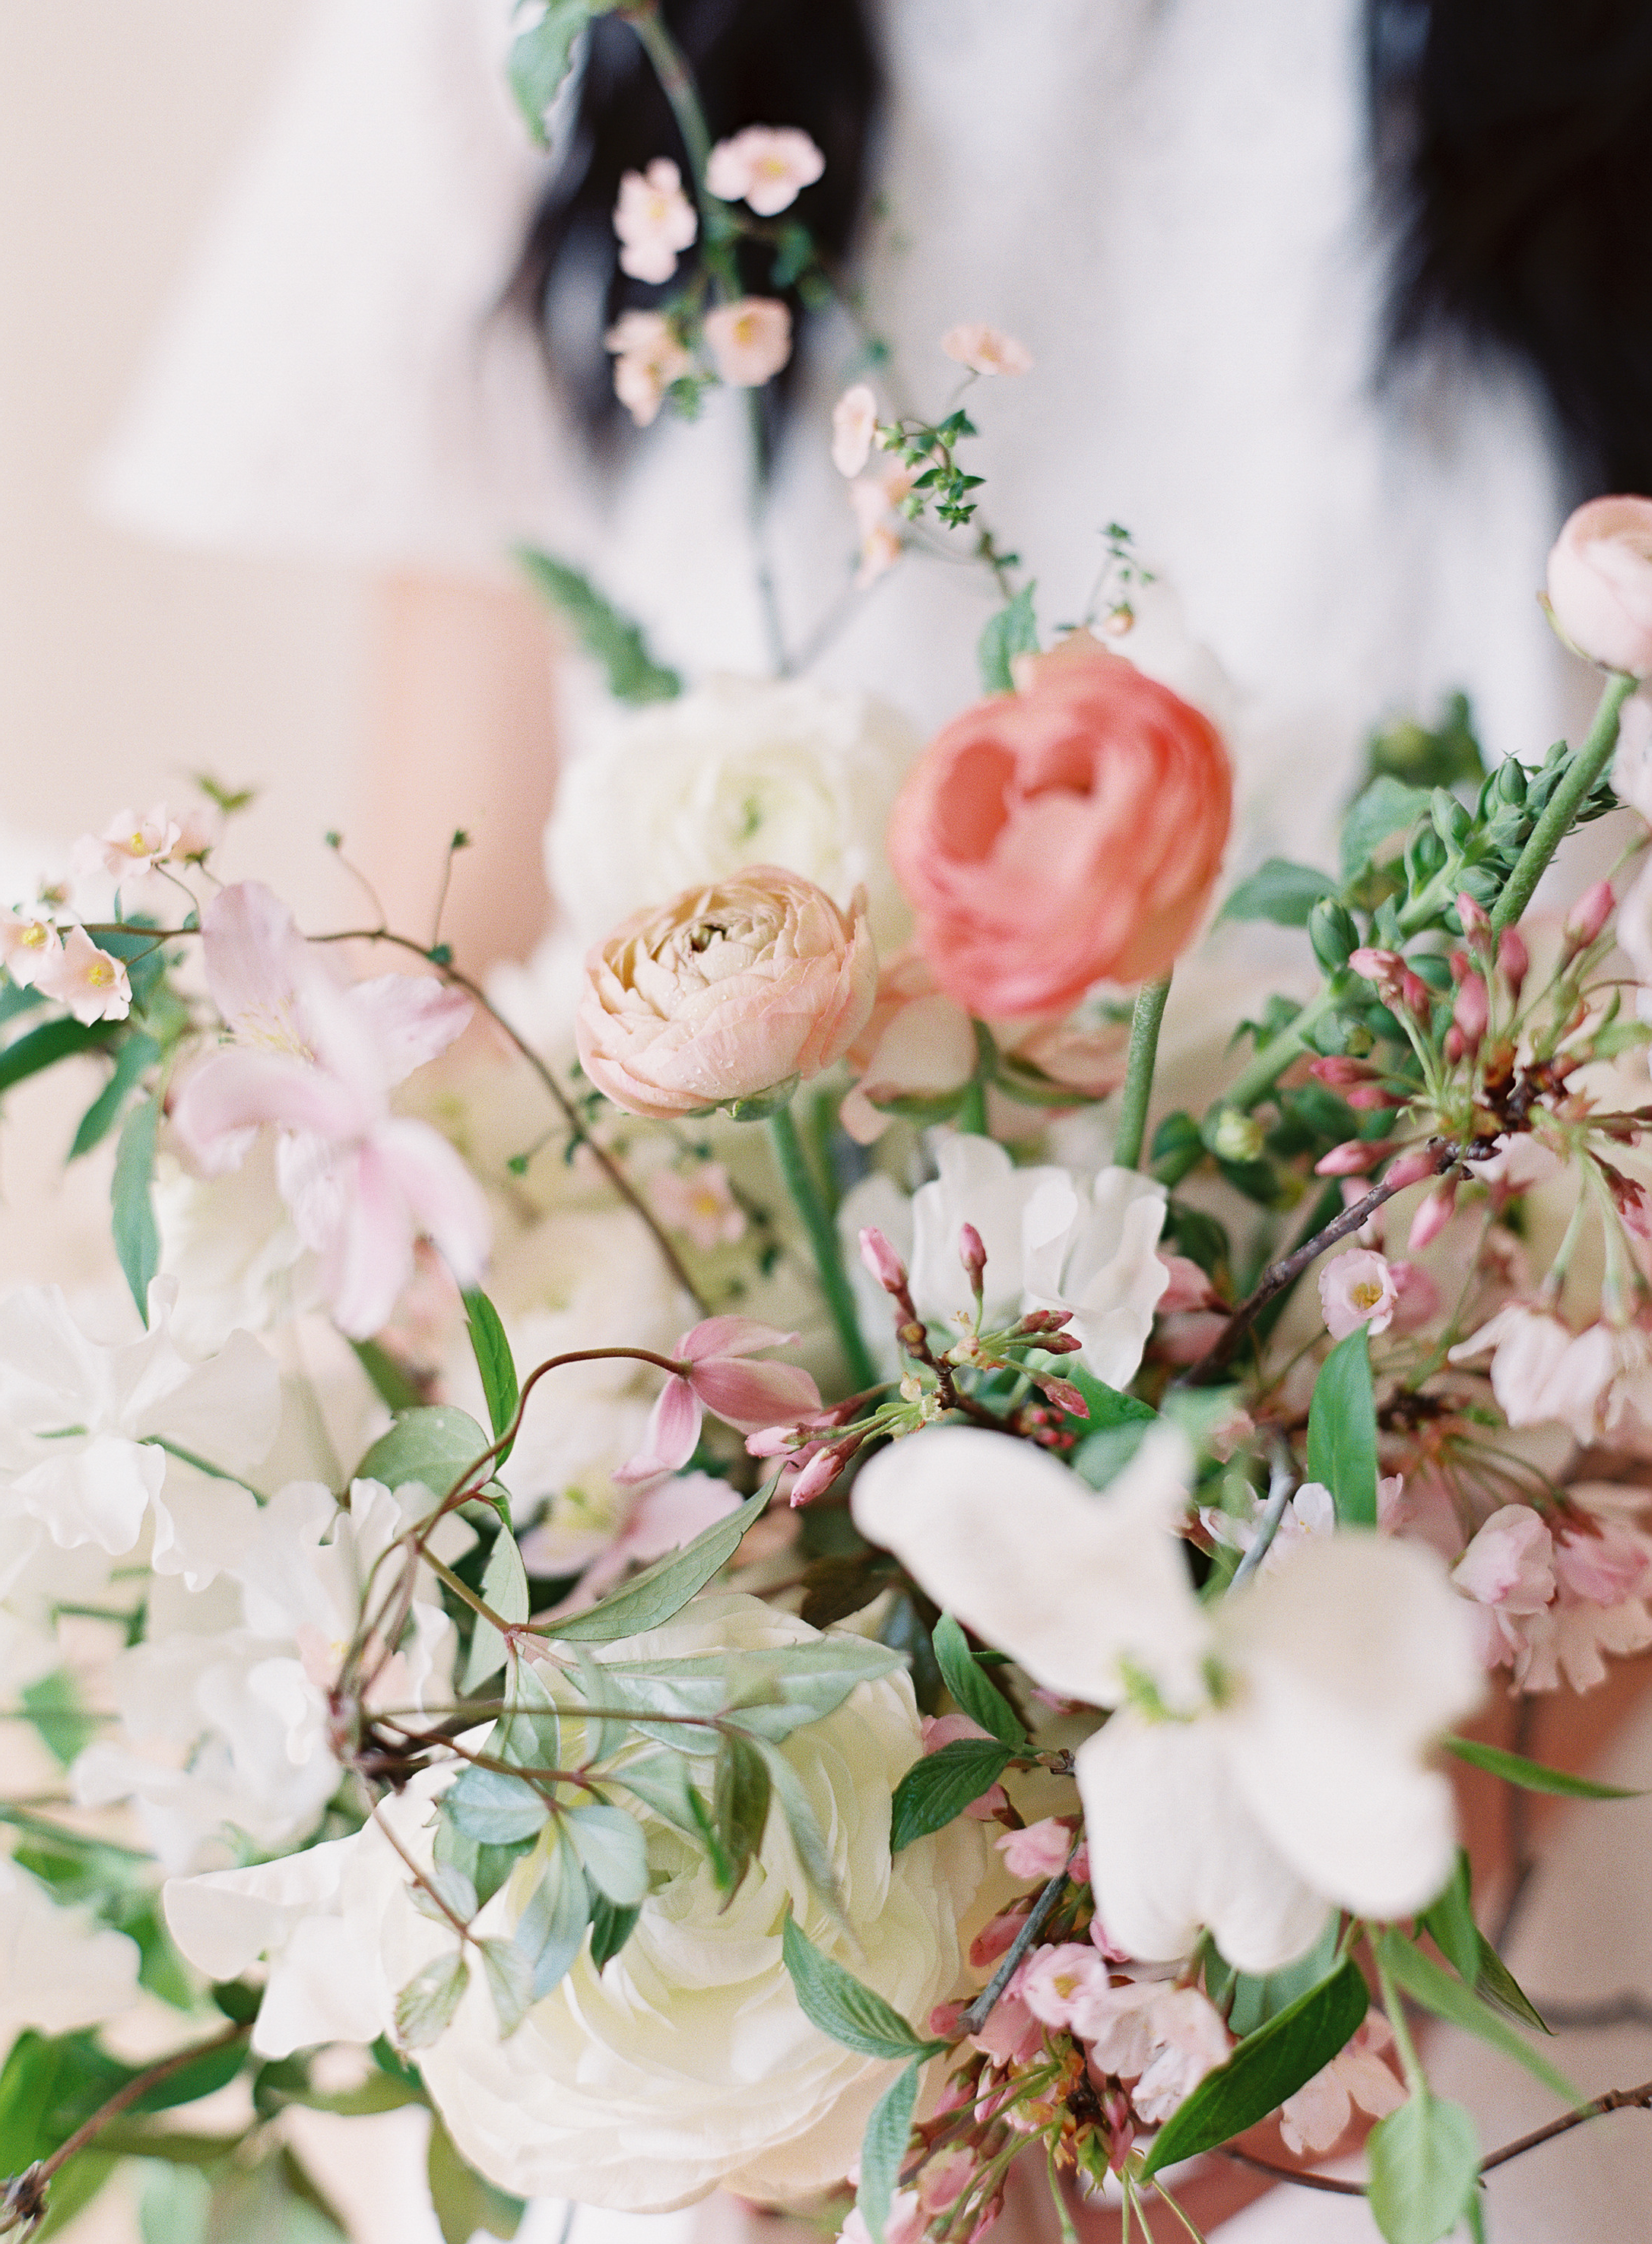 Meghan Mehan Photography | Fine Art Film Wedding Photographer | California | San Francisco | Napa | Sonoma | Santa Barbara | Big Sur | Los Angeles | Destination Wedding Photographer 035.jpg